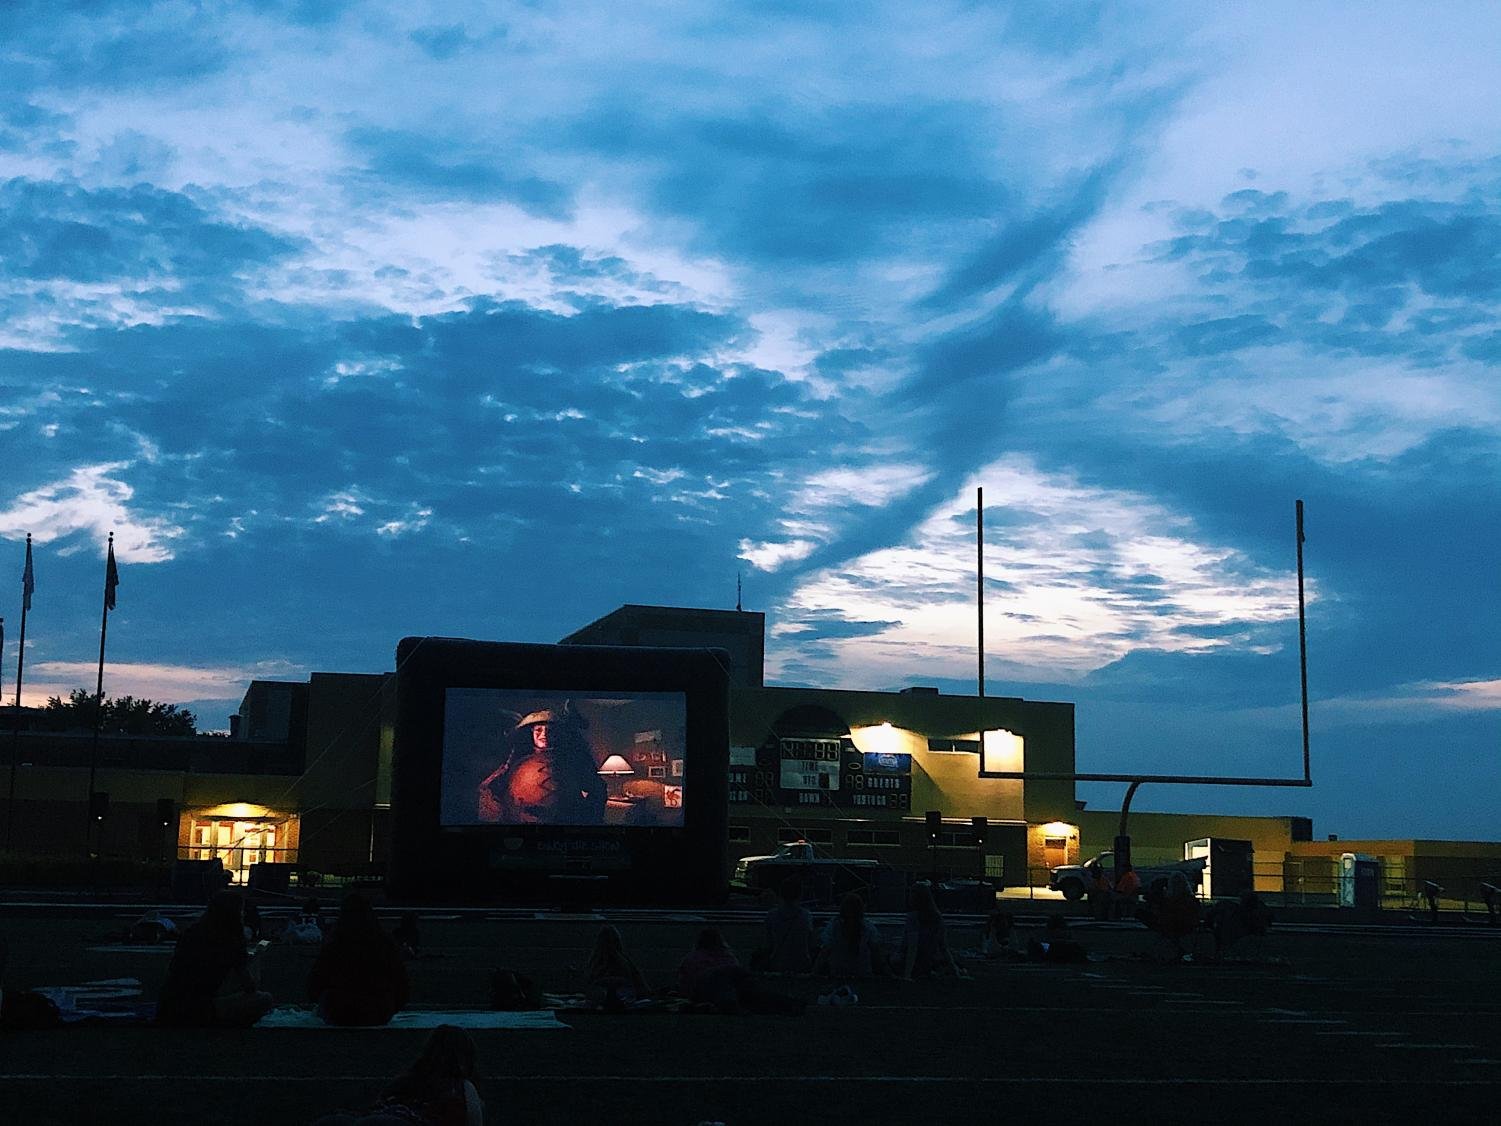 This was the first movie night that was hosted on the football field. The screen and tech setup was provided by the Lemont Park District